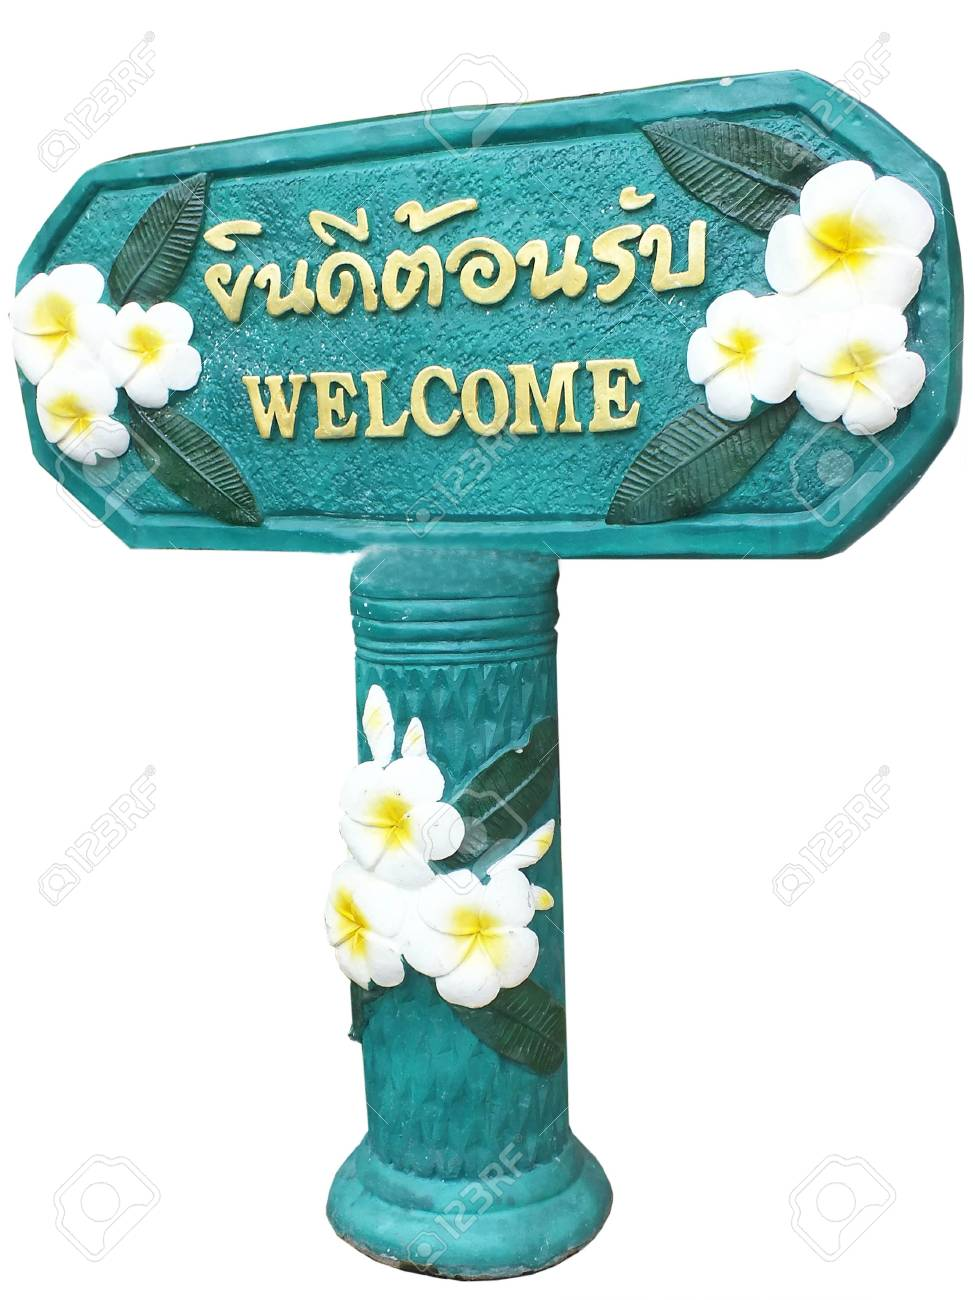 Welcom label with two language English and Thai Stock Photo - 18576377